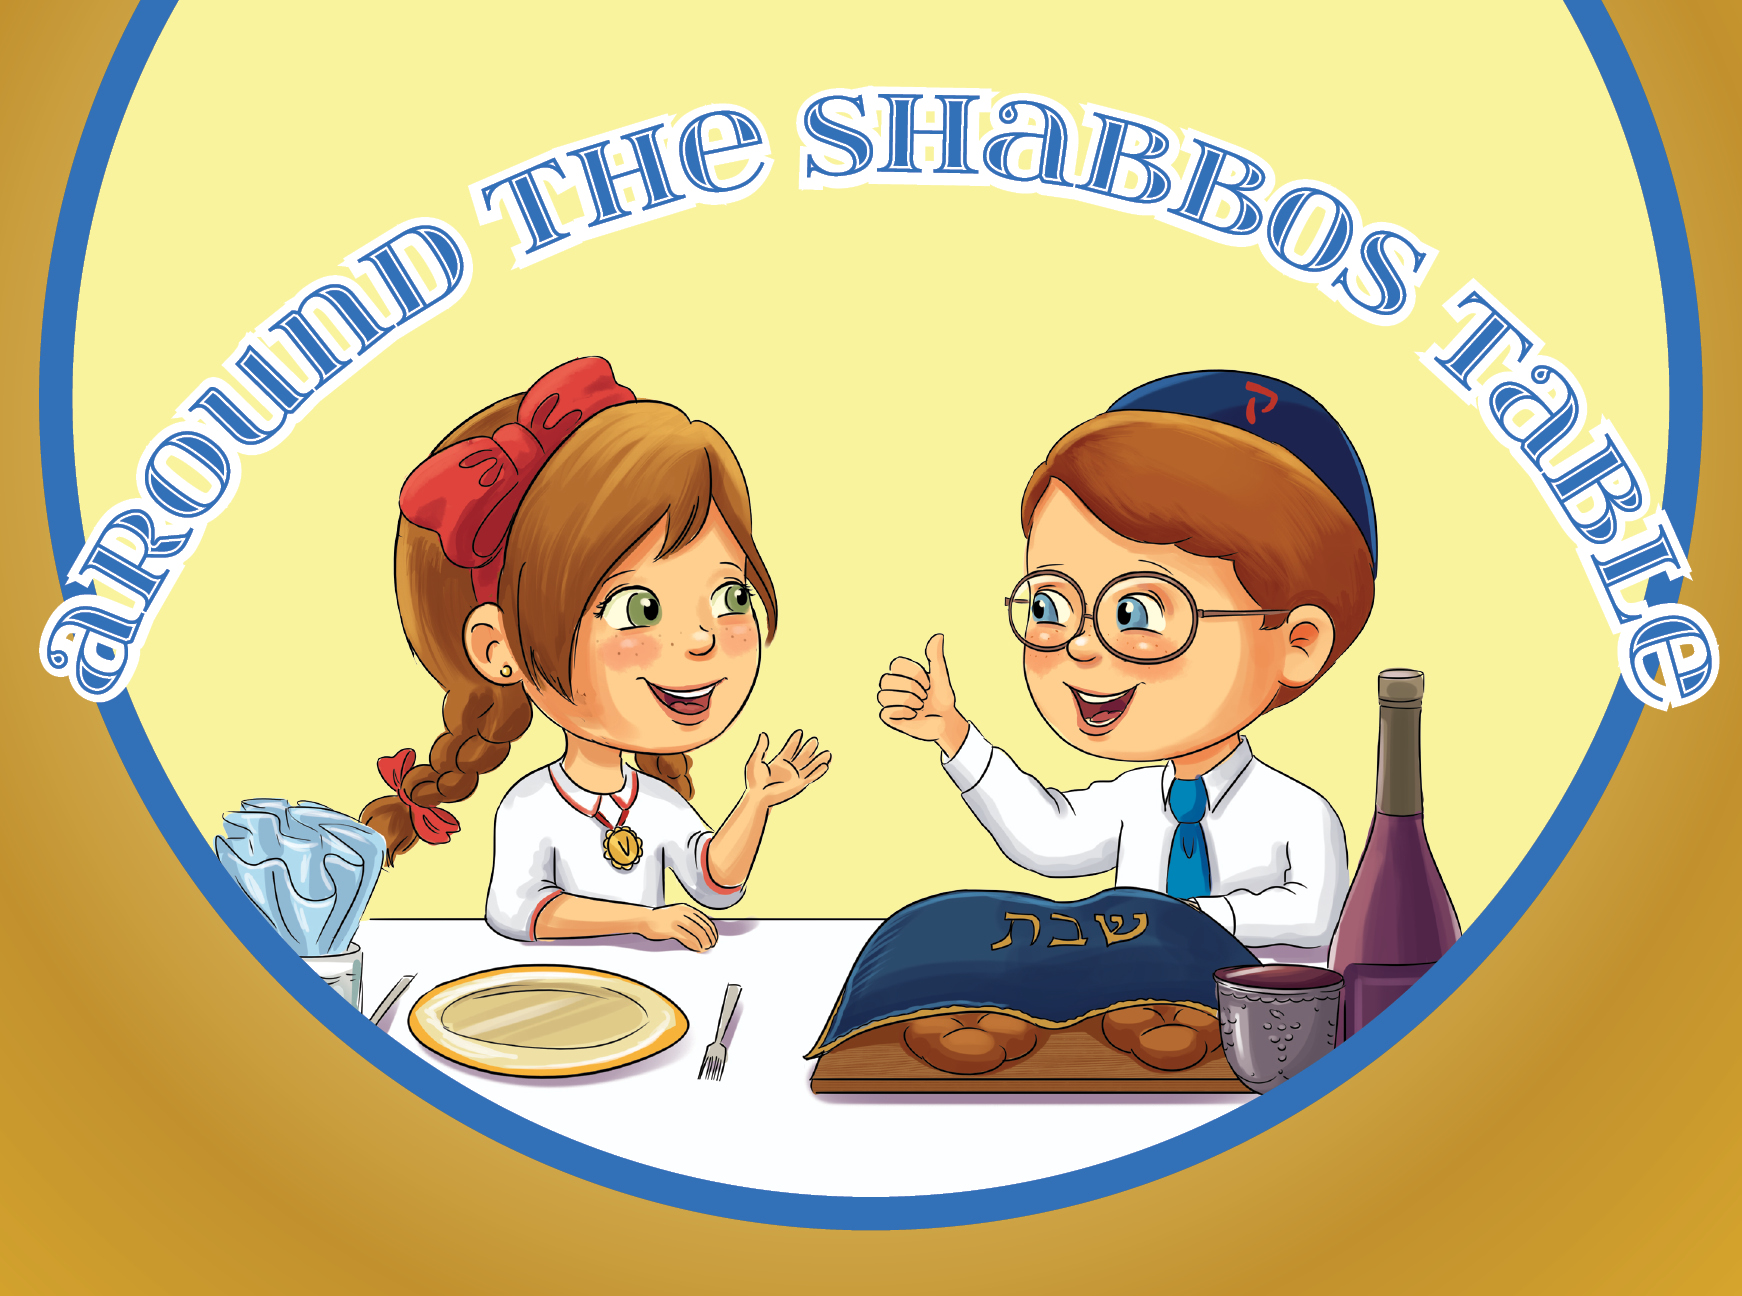 Around the Shabbos